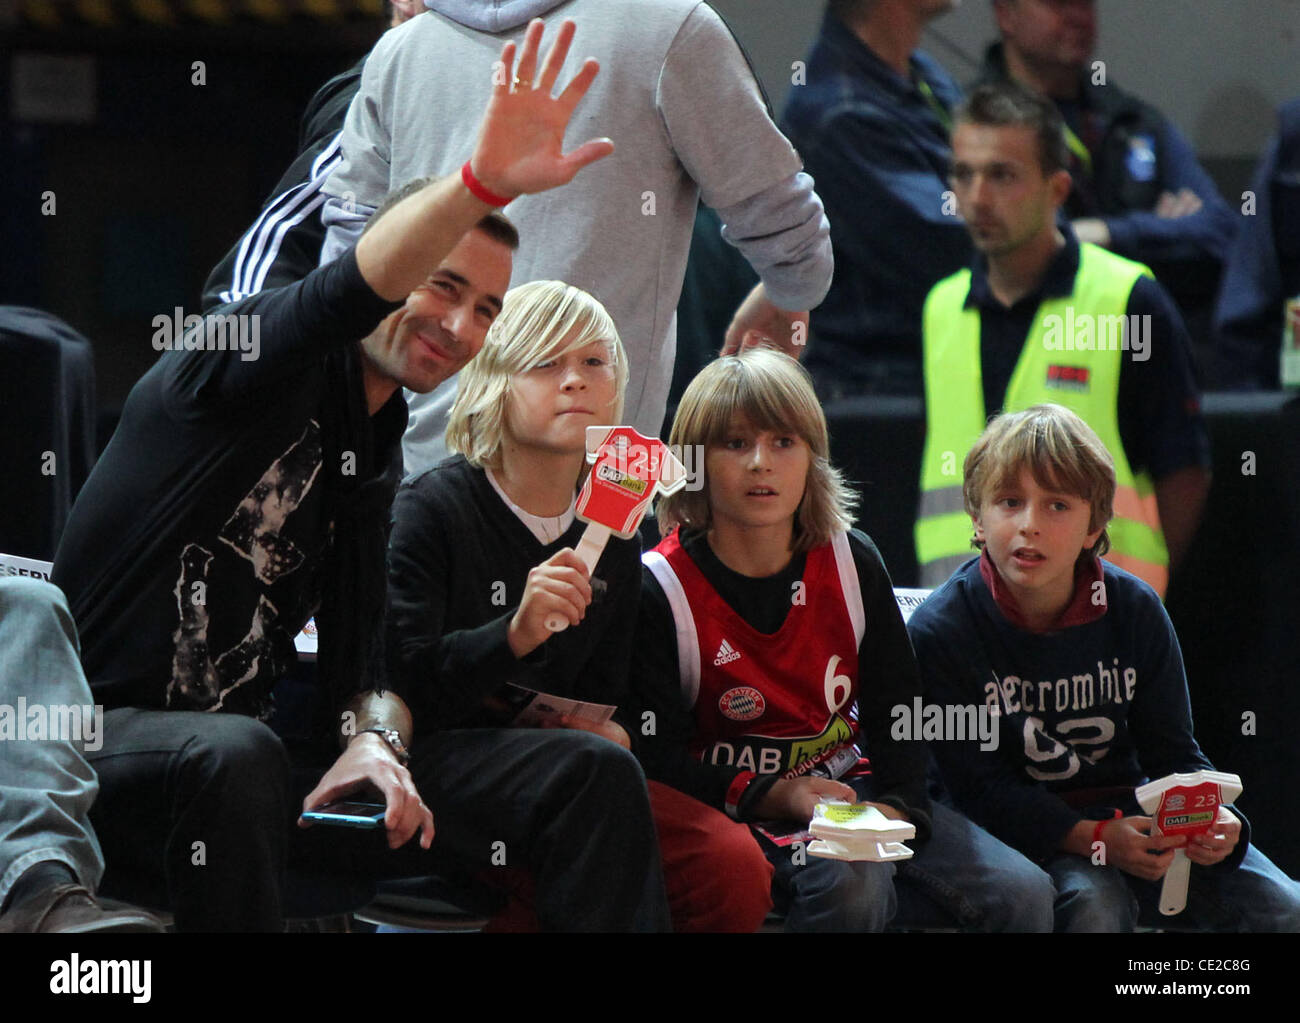 Kai Pflaume at a basketball match between FC Bayern and ETB Essen at Olymiahalle hall. Munich, Germany - 06.11.2010 Stock Photo